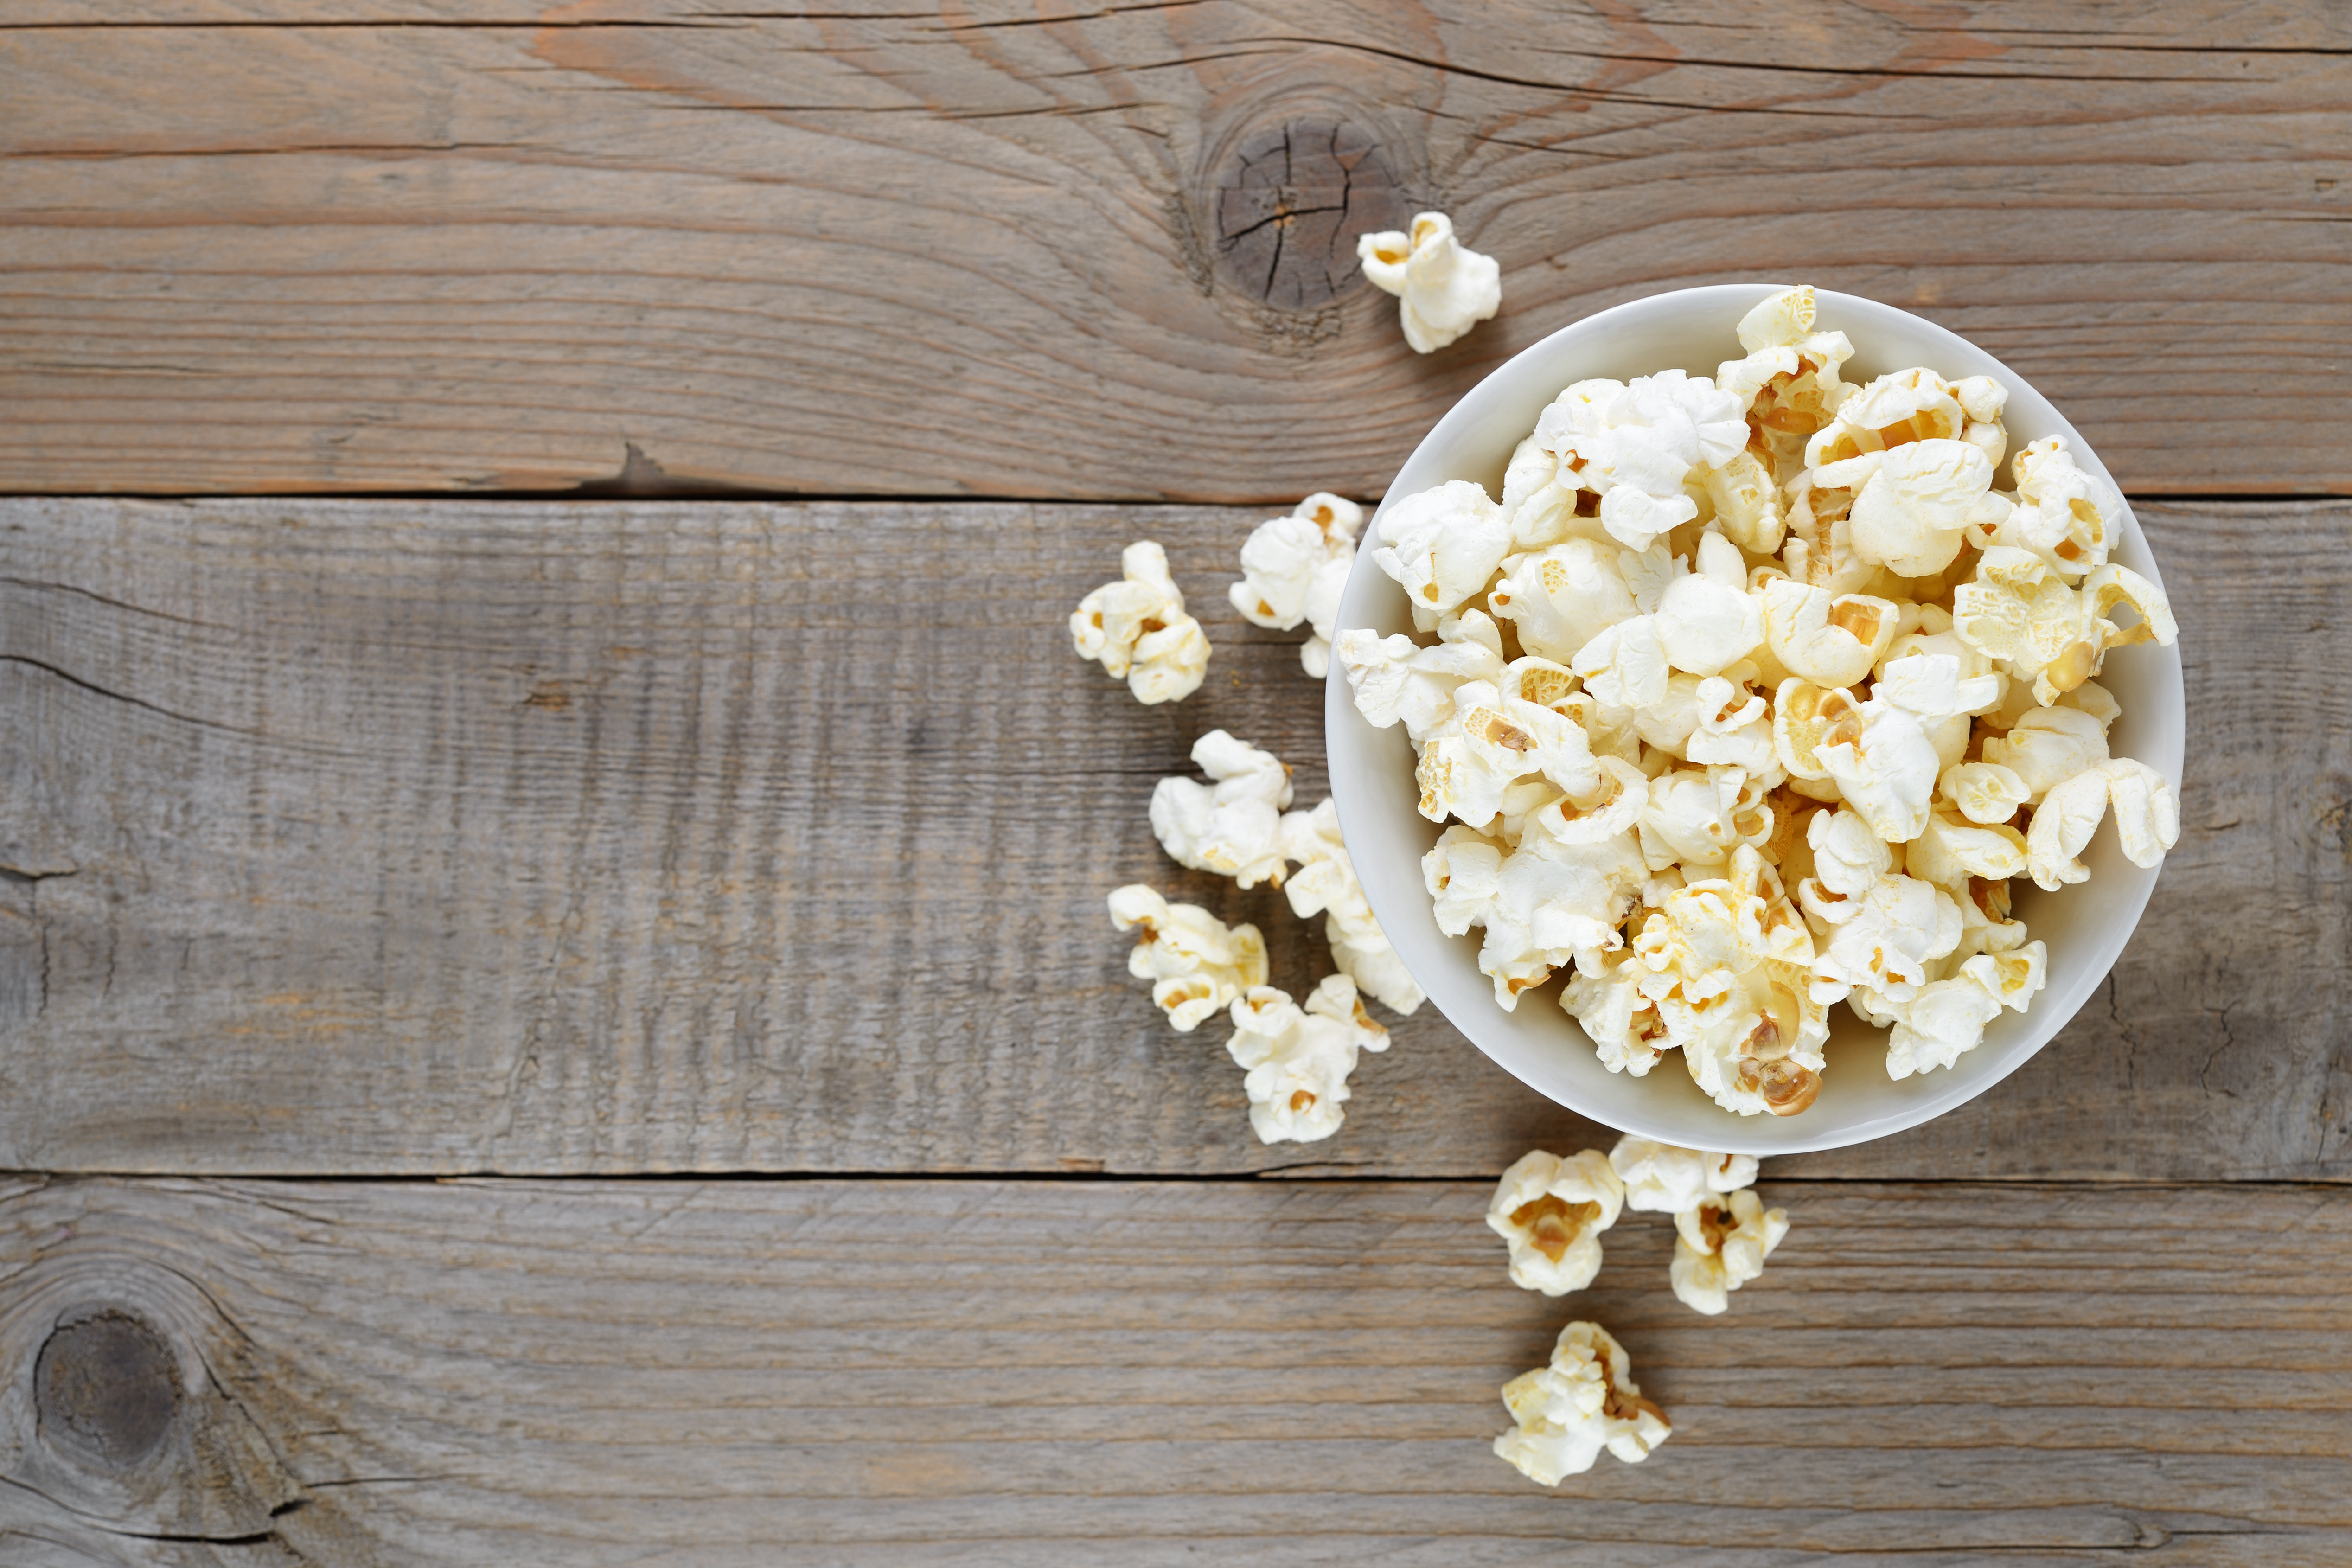 How Should Popcorn Be Served to Make It a Healthy Snack? | Healthy Eating |  SF Gate